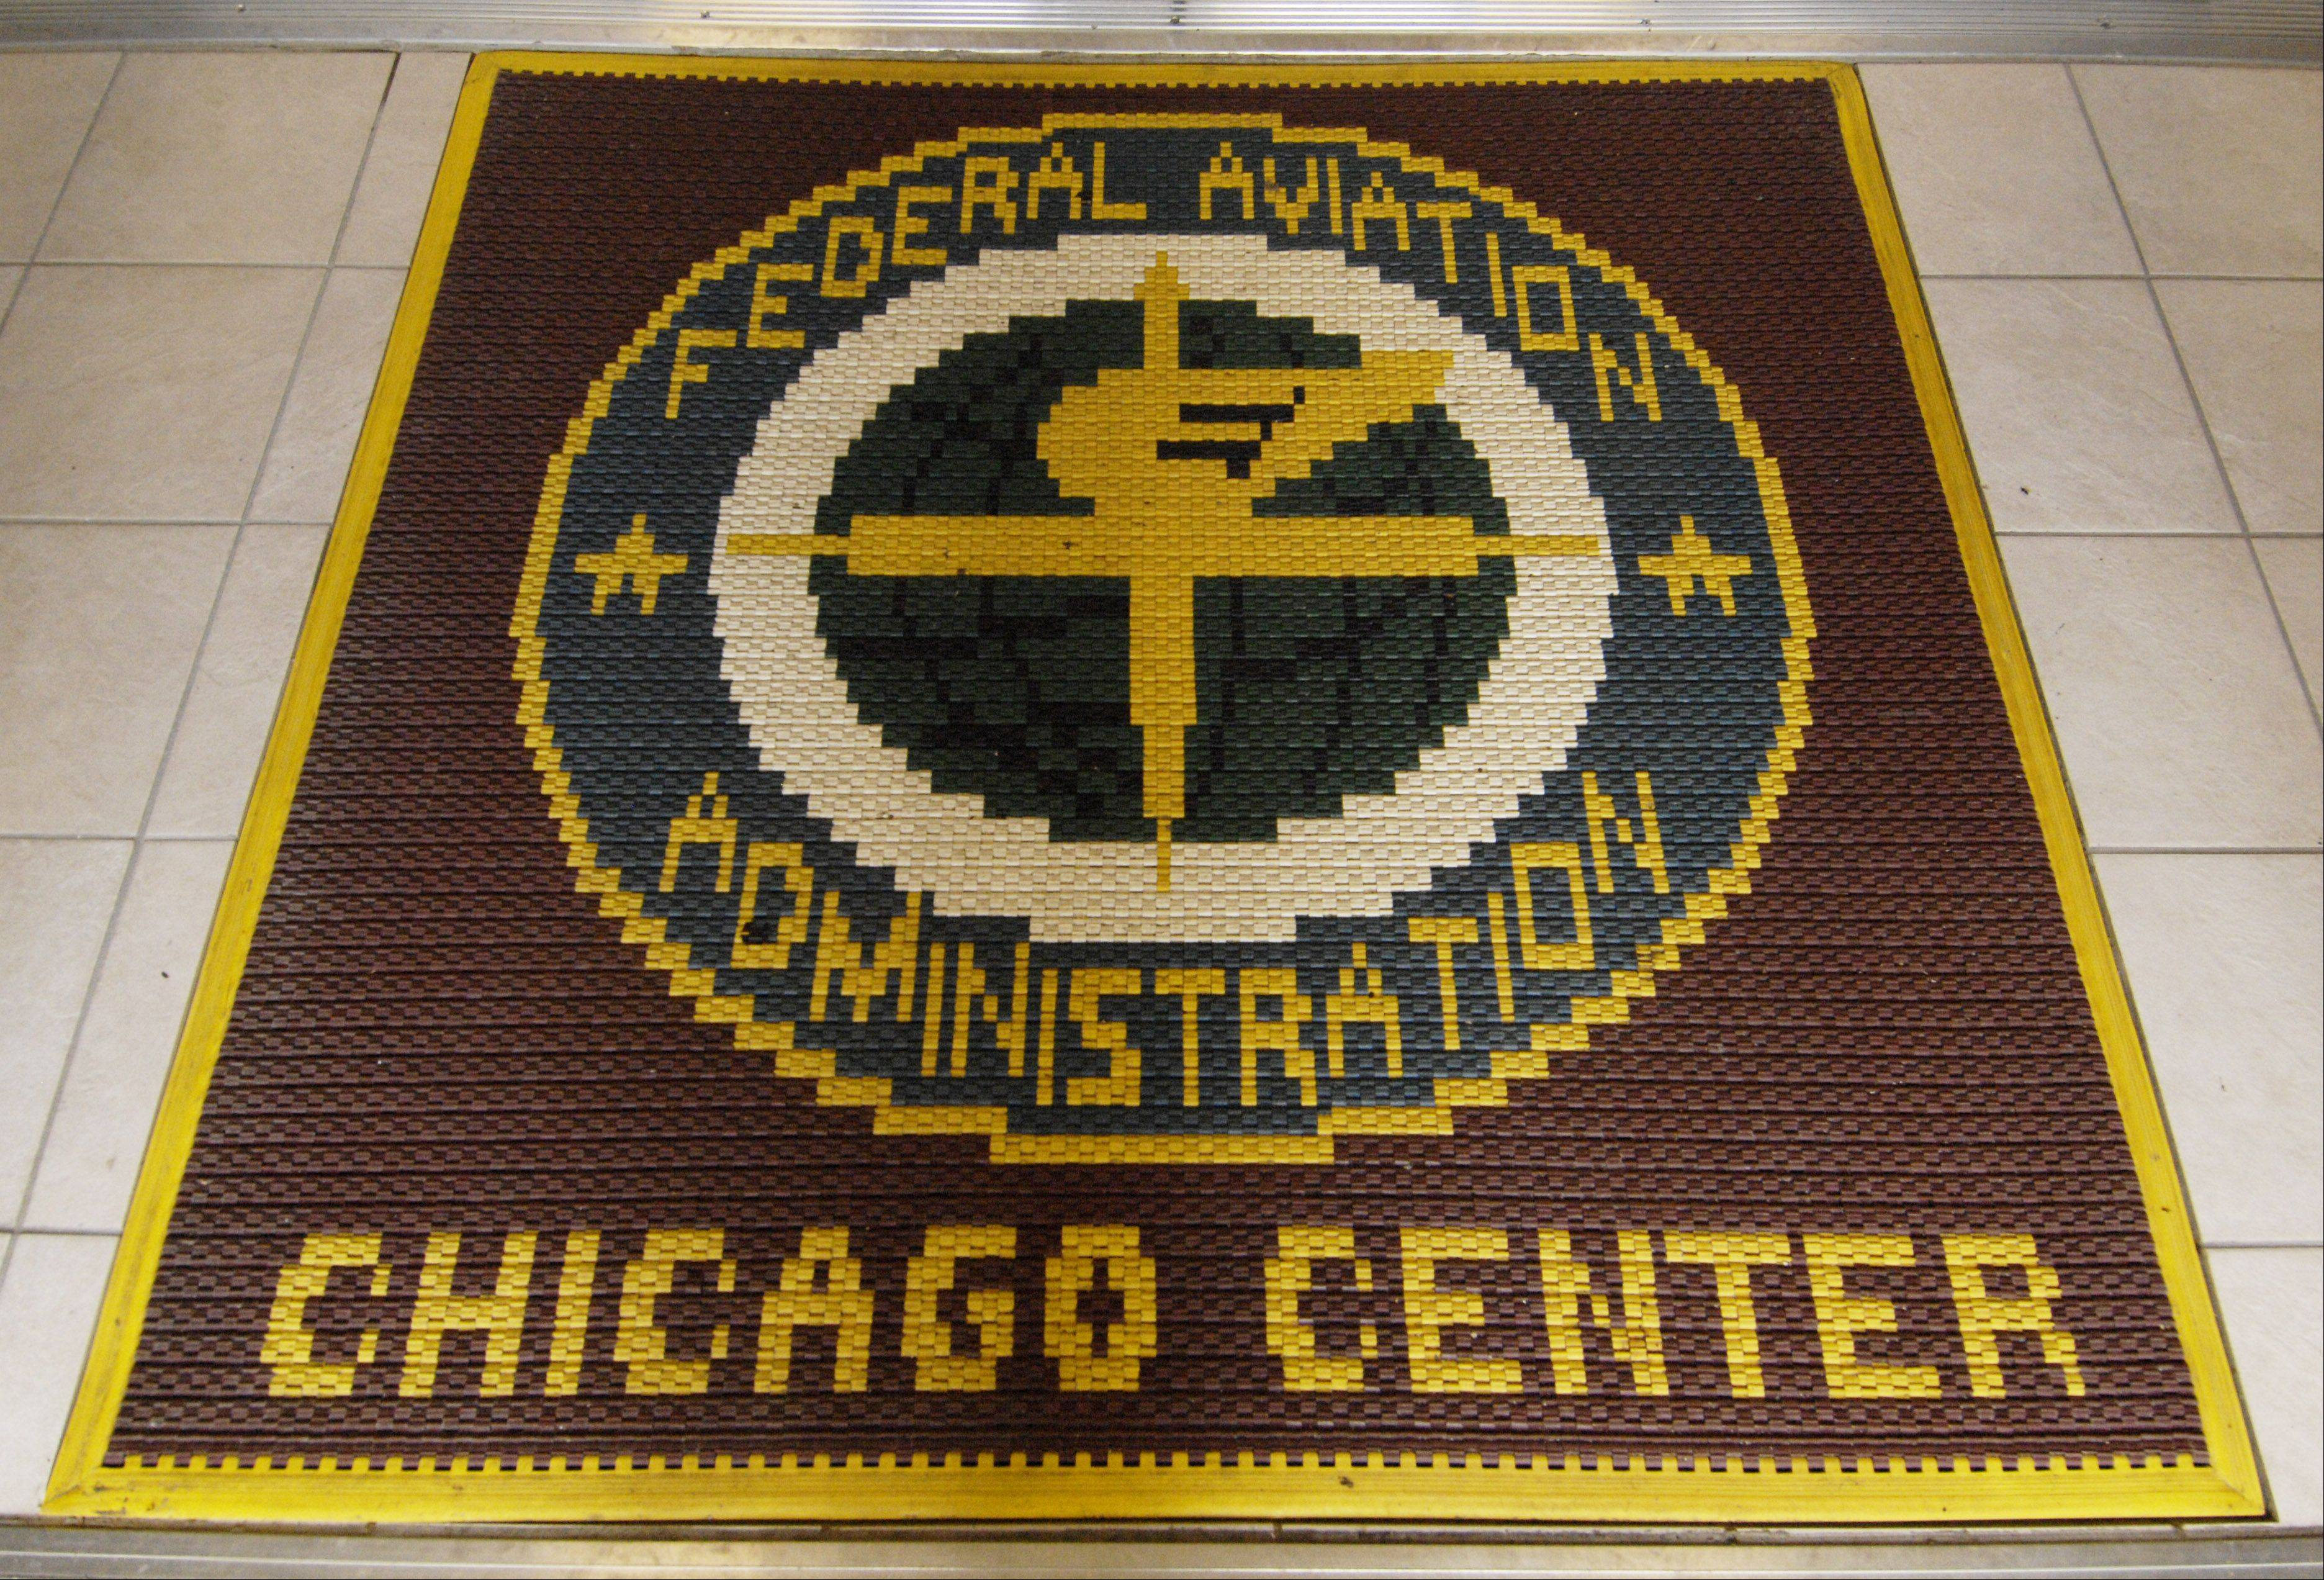 The entryway to the U.S. Department of Transportation's FAA Chicago Air Route Traffic Control Center in Aurora.